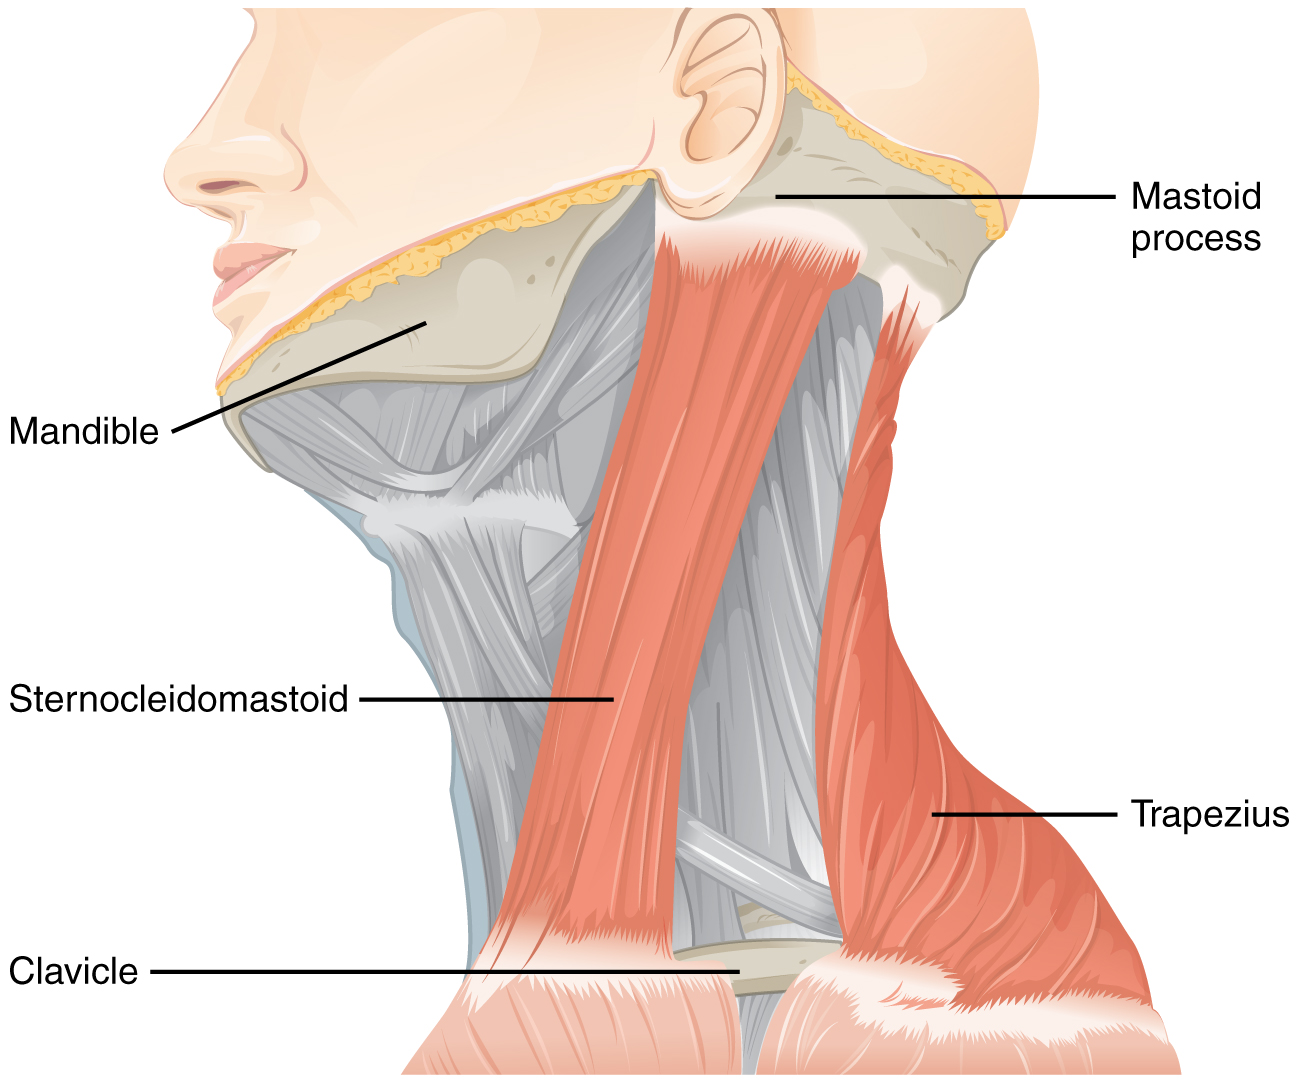 Anatomical locations of the sternocleidomastoid and trapezius muscles (source)